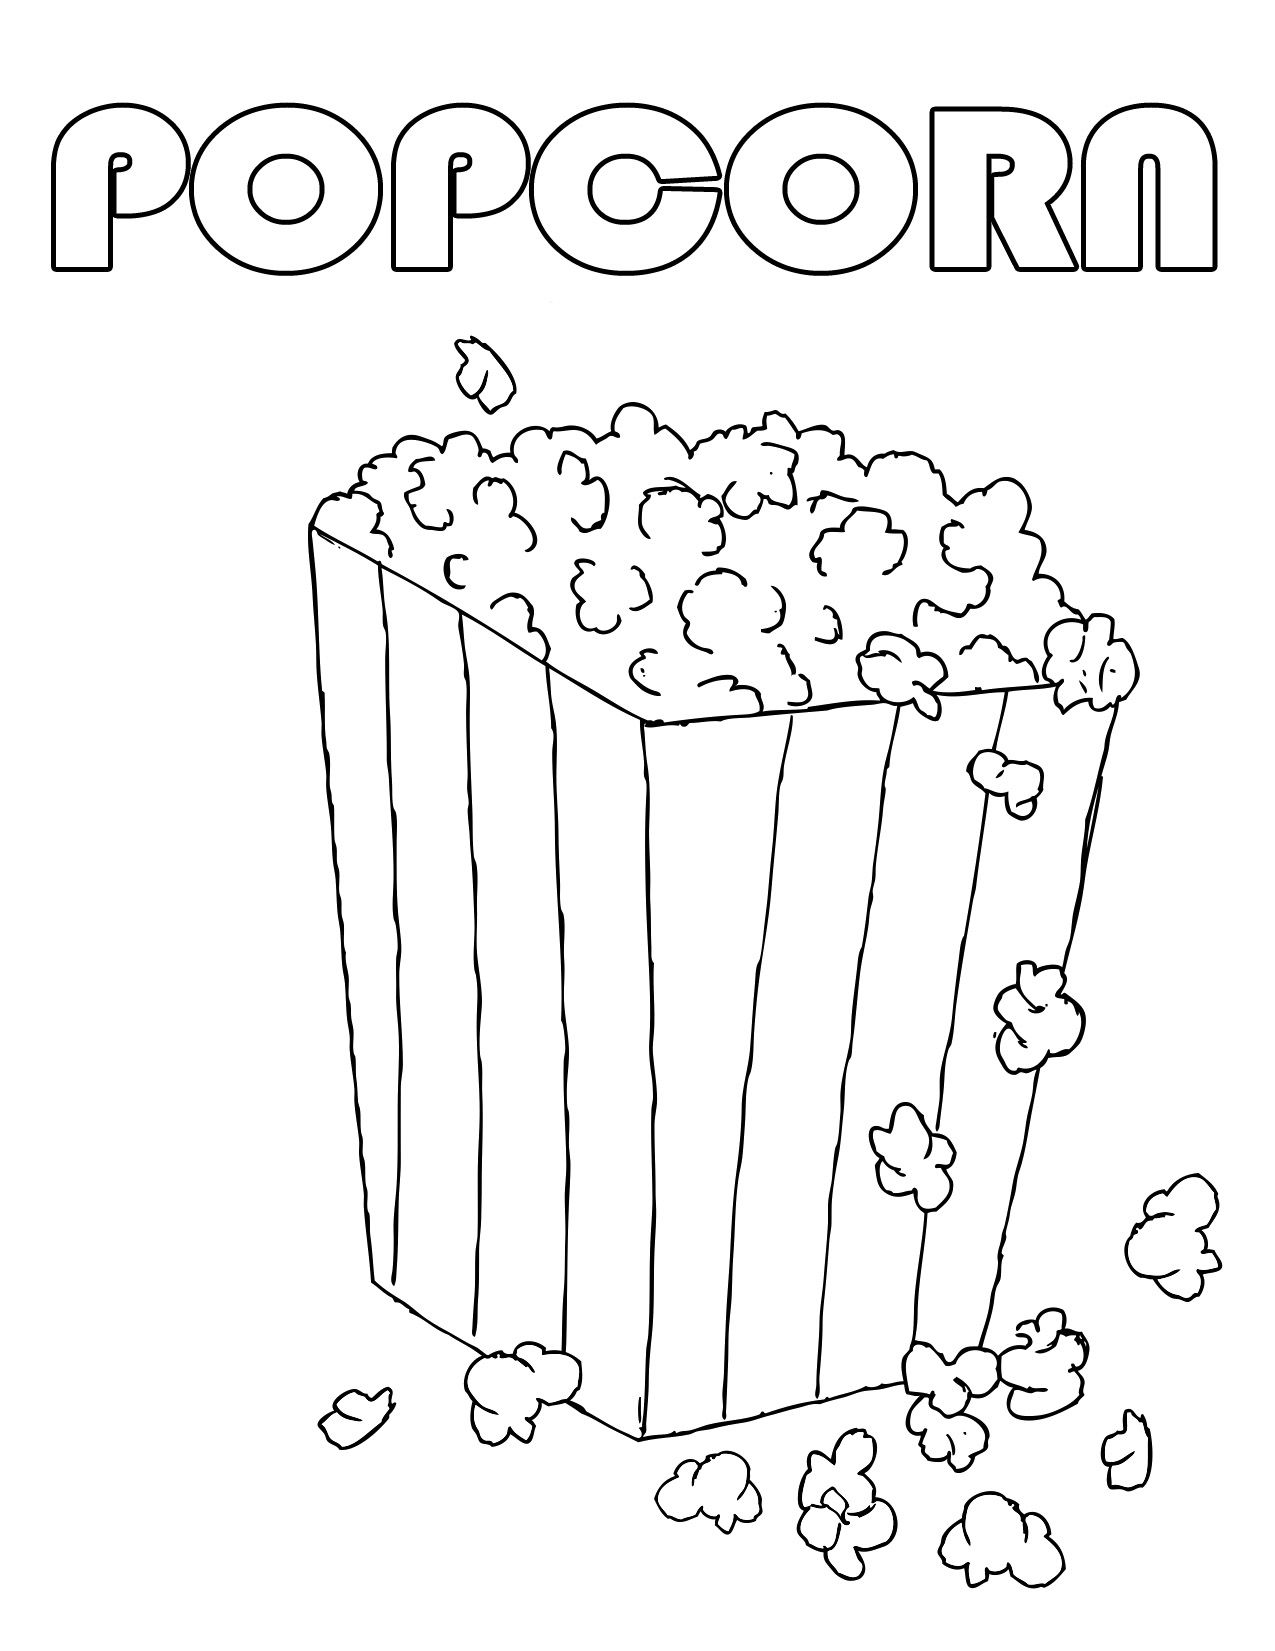 Popcorn Day Coloring Pages Popcorn Day Coloring Pages